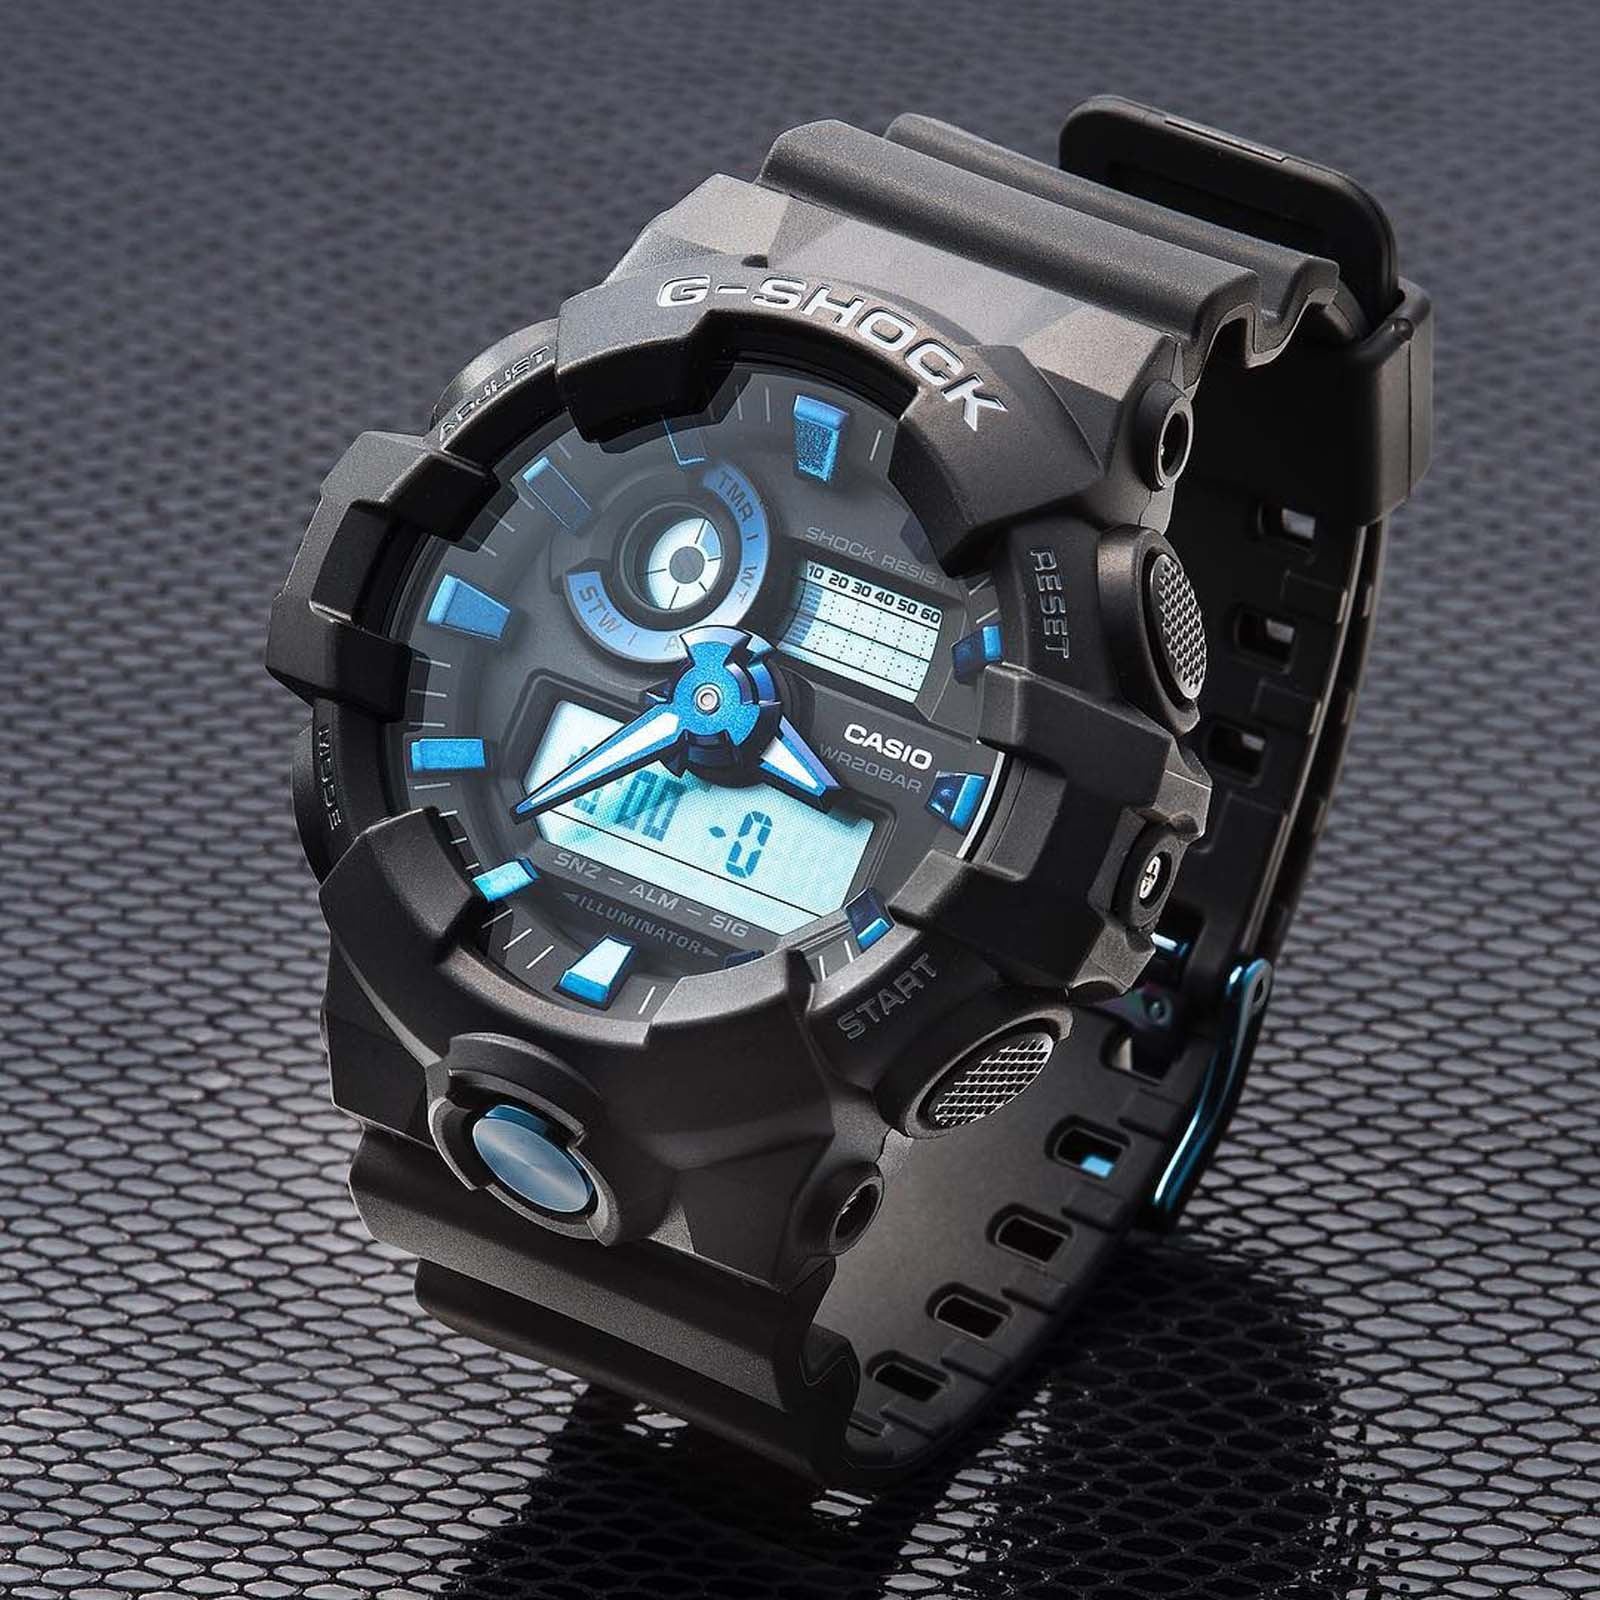 Casio G-Shock GA-710B-1A2DR Special Color Models Digital Analog Dial Matte Black Resin Strap Machtwatch